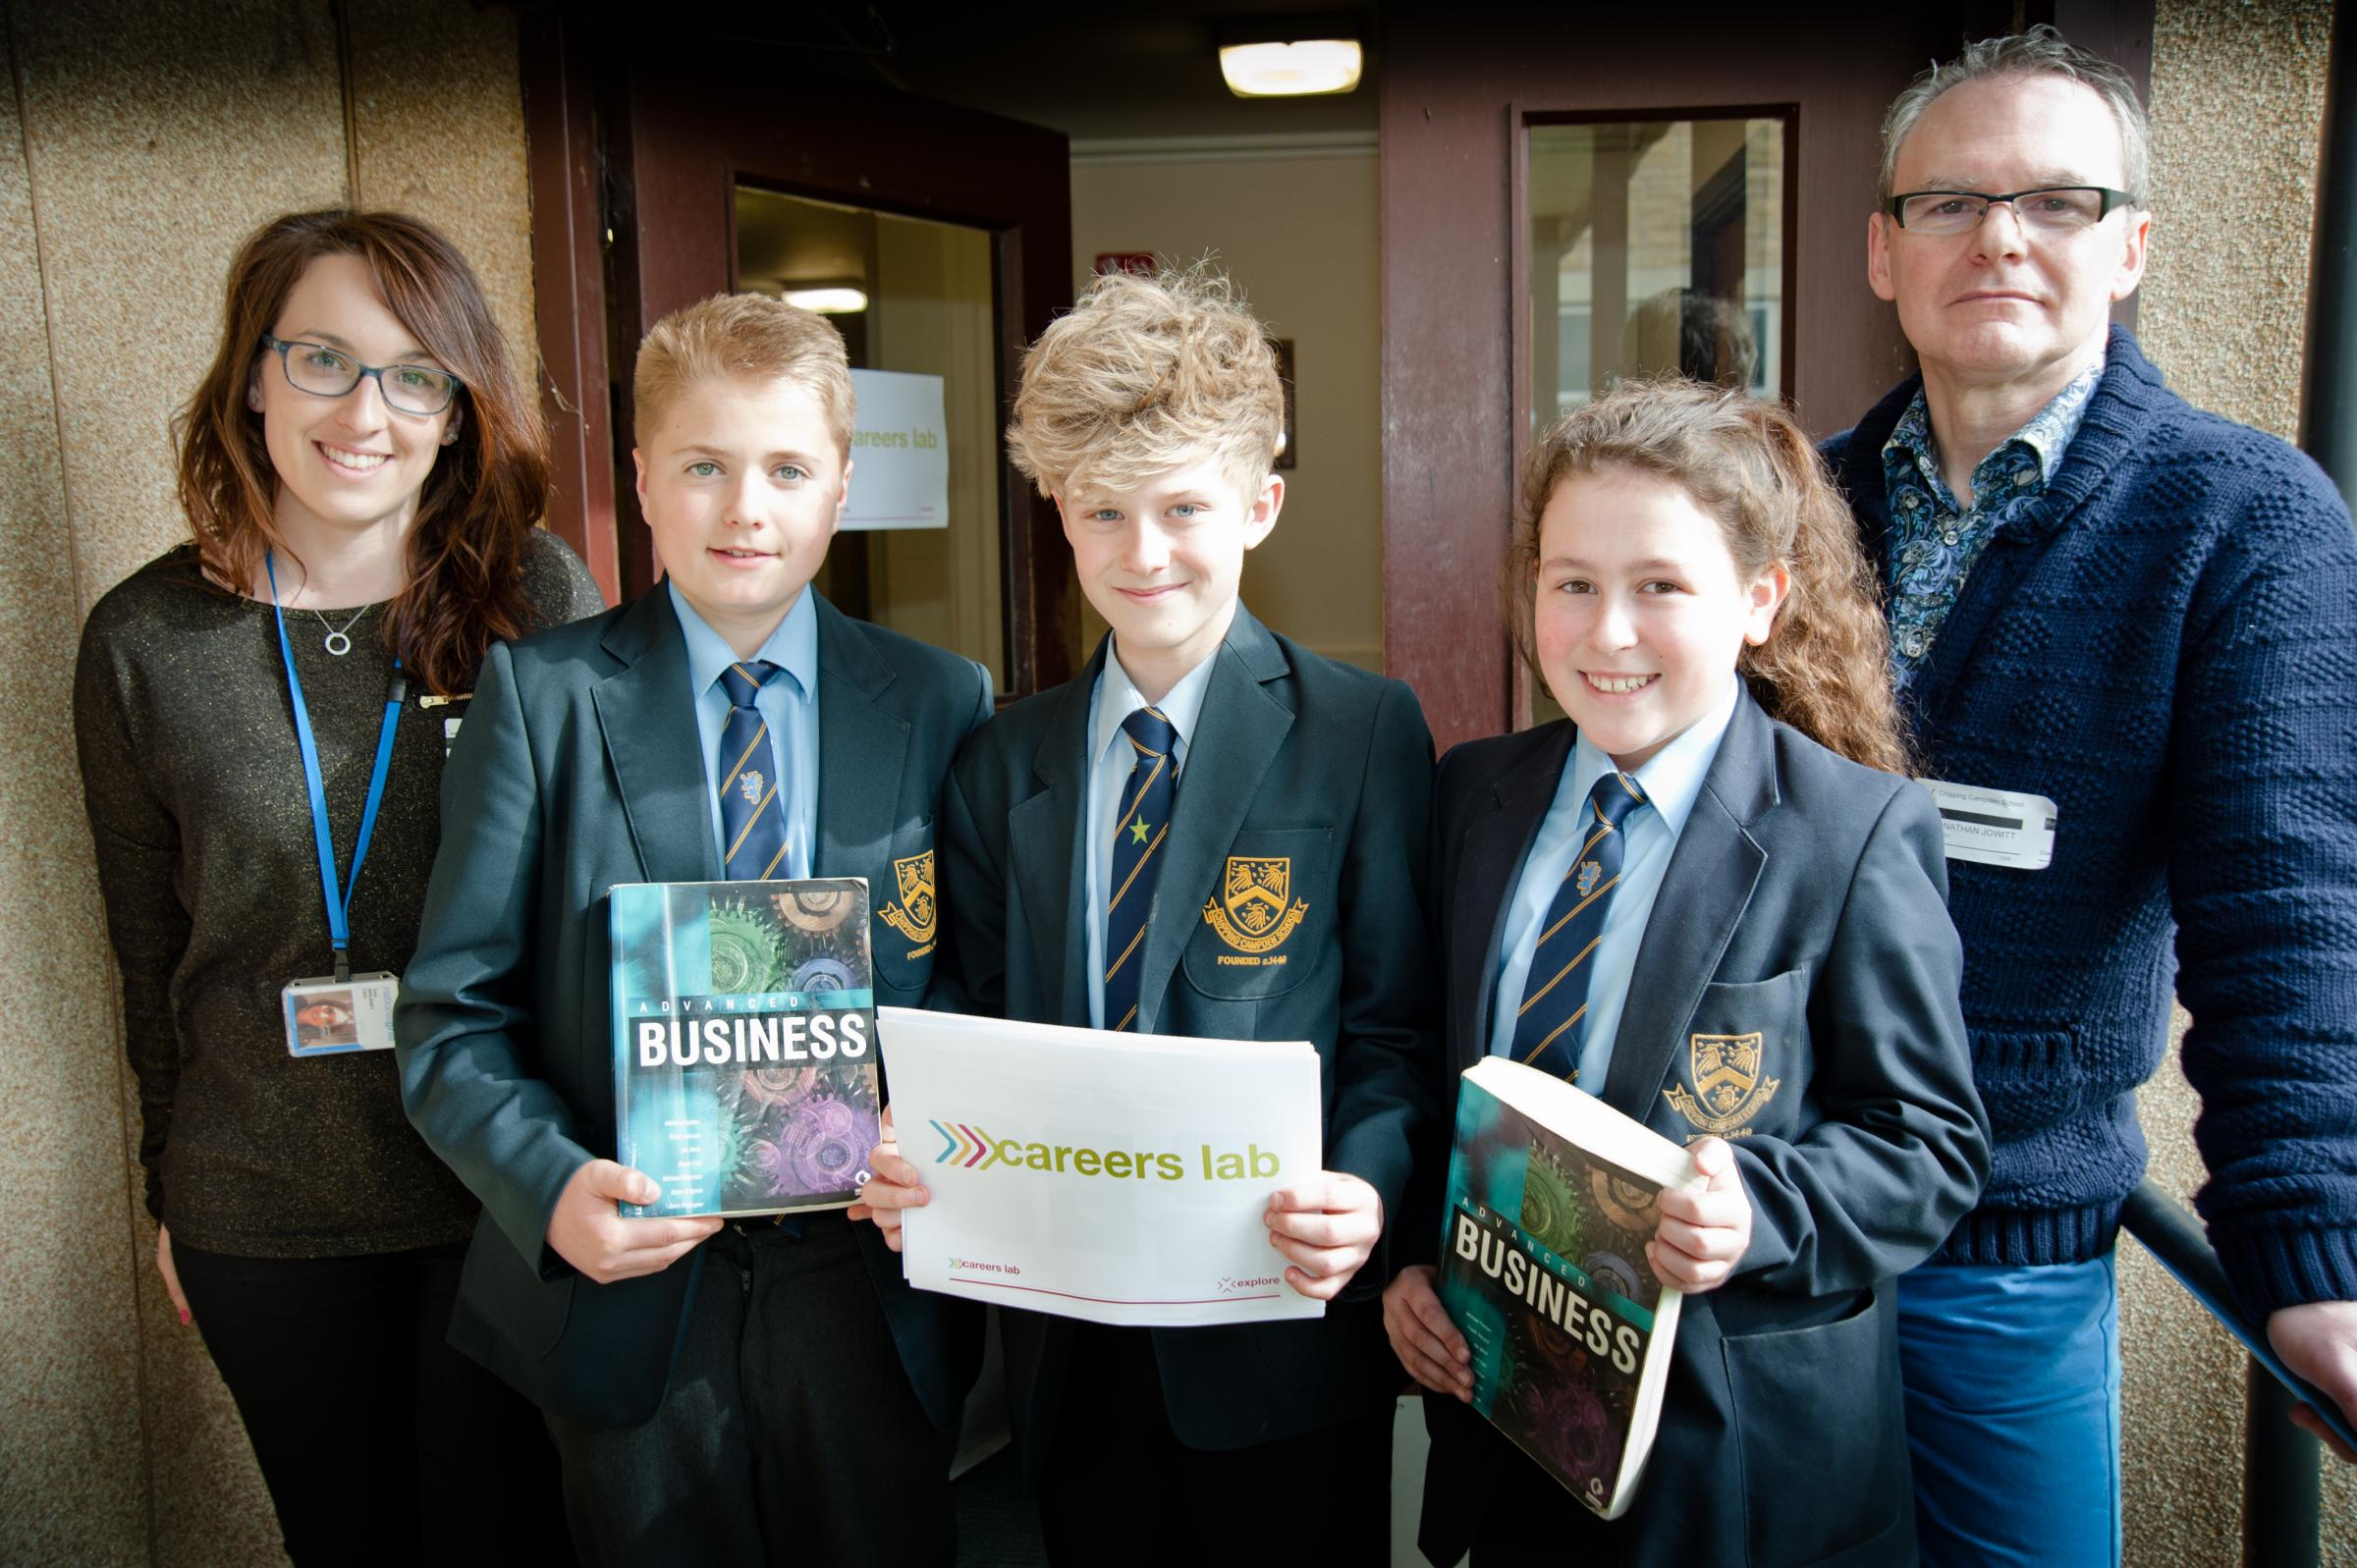 Chipping Campden School Year 8 students Harry Buxton, William Marks, Bethany Smith with business ambassadors Tara Maloney from National Grid and Jonathan Jowett from Dolby